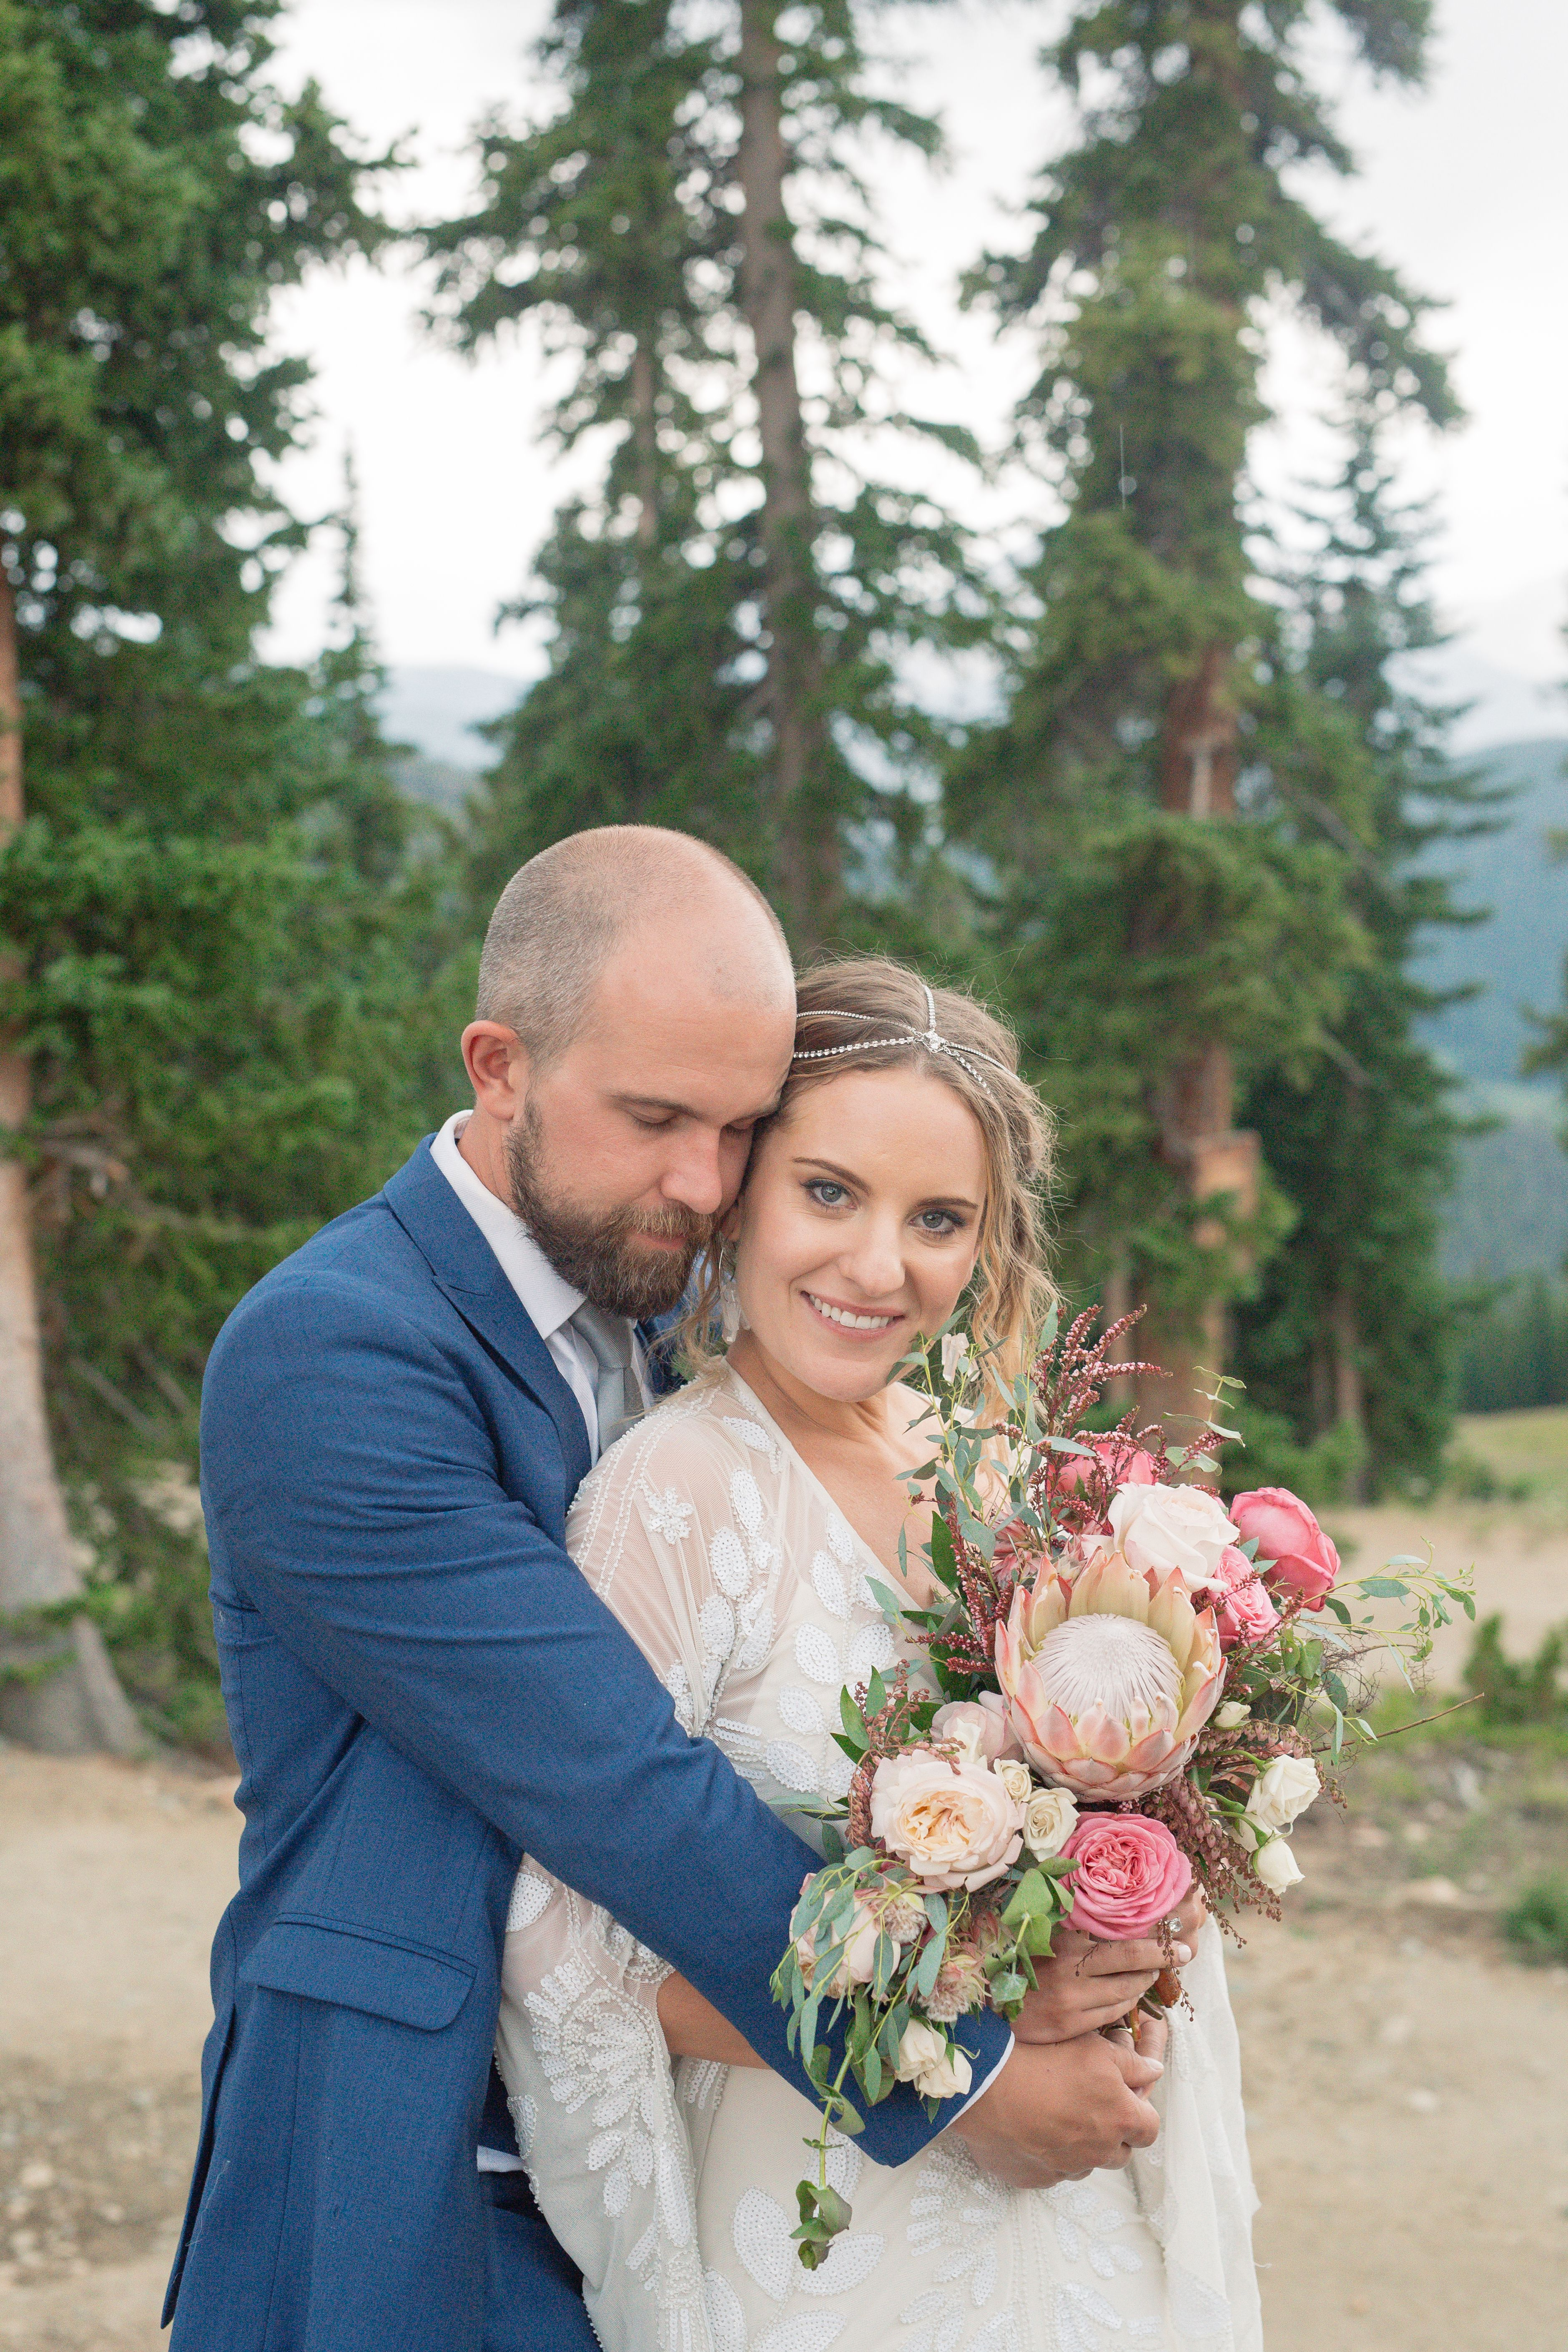 Real Borrowed Brides -Megan S. in Keystone, CO #hairchains